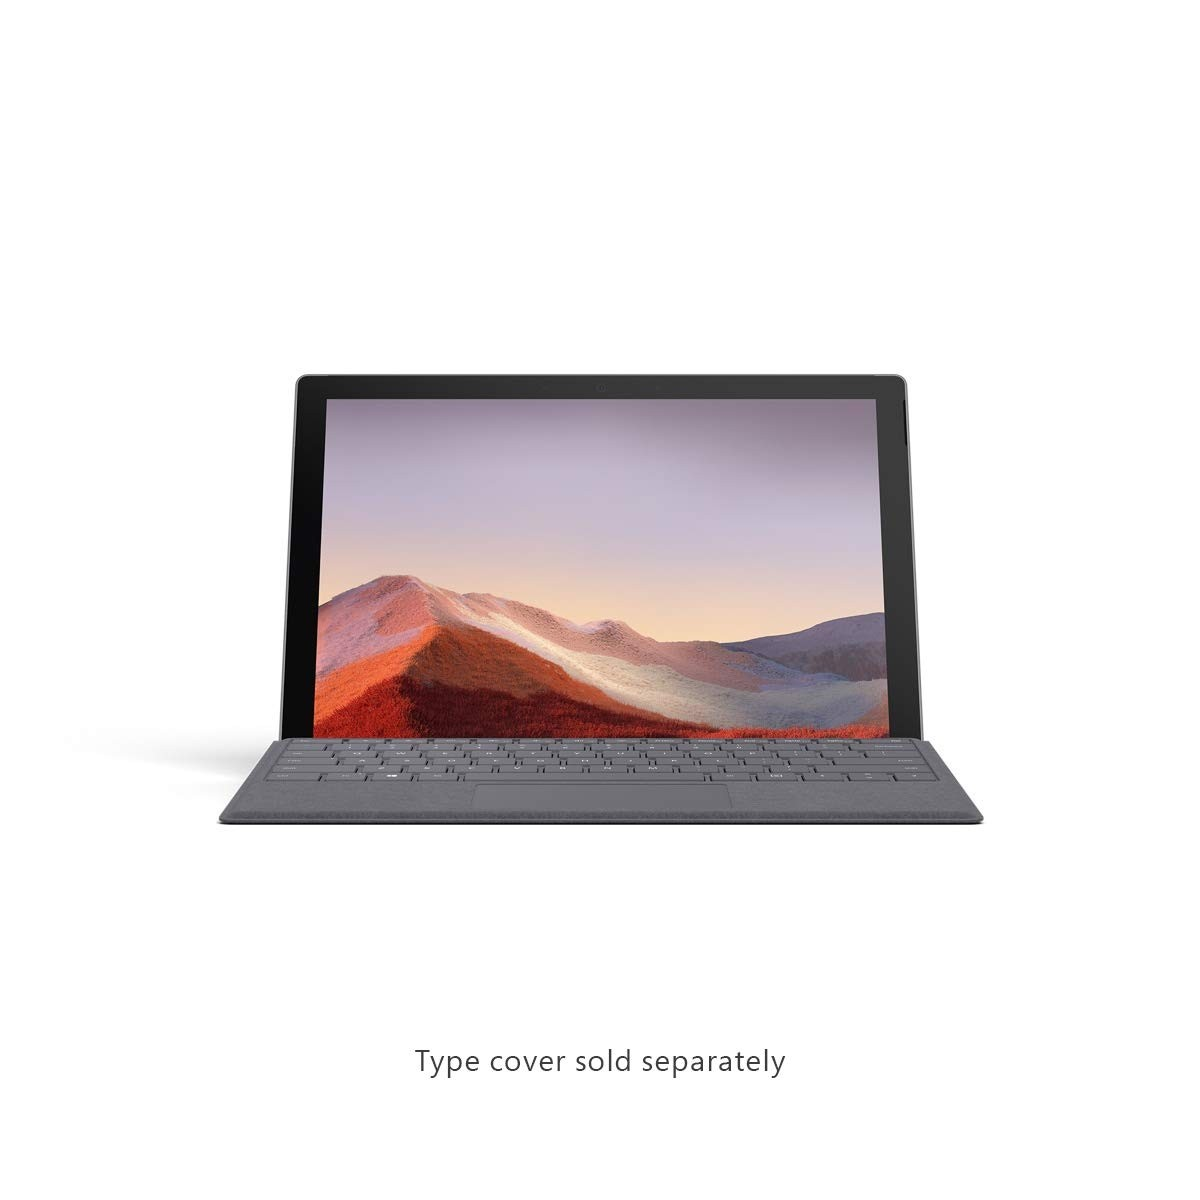 Refurbished laptops & desktops - Microsoft Surface Pro 7 Vdv-00015 12.3 Inch Touchscreen 2-In-1 Laptop (10TH Gen Intel Core I5/8GB/128GB SSD/Windows 10 Home/Intel Iris Plus Graphics), Platinum